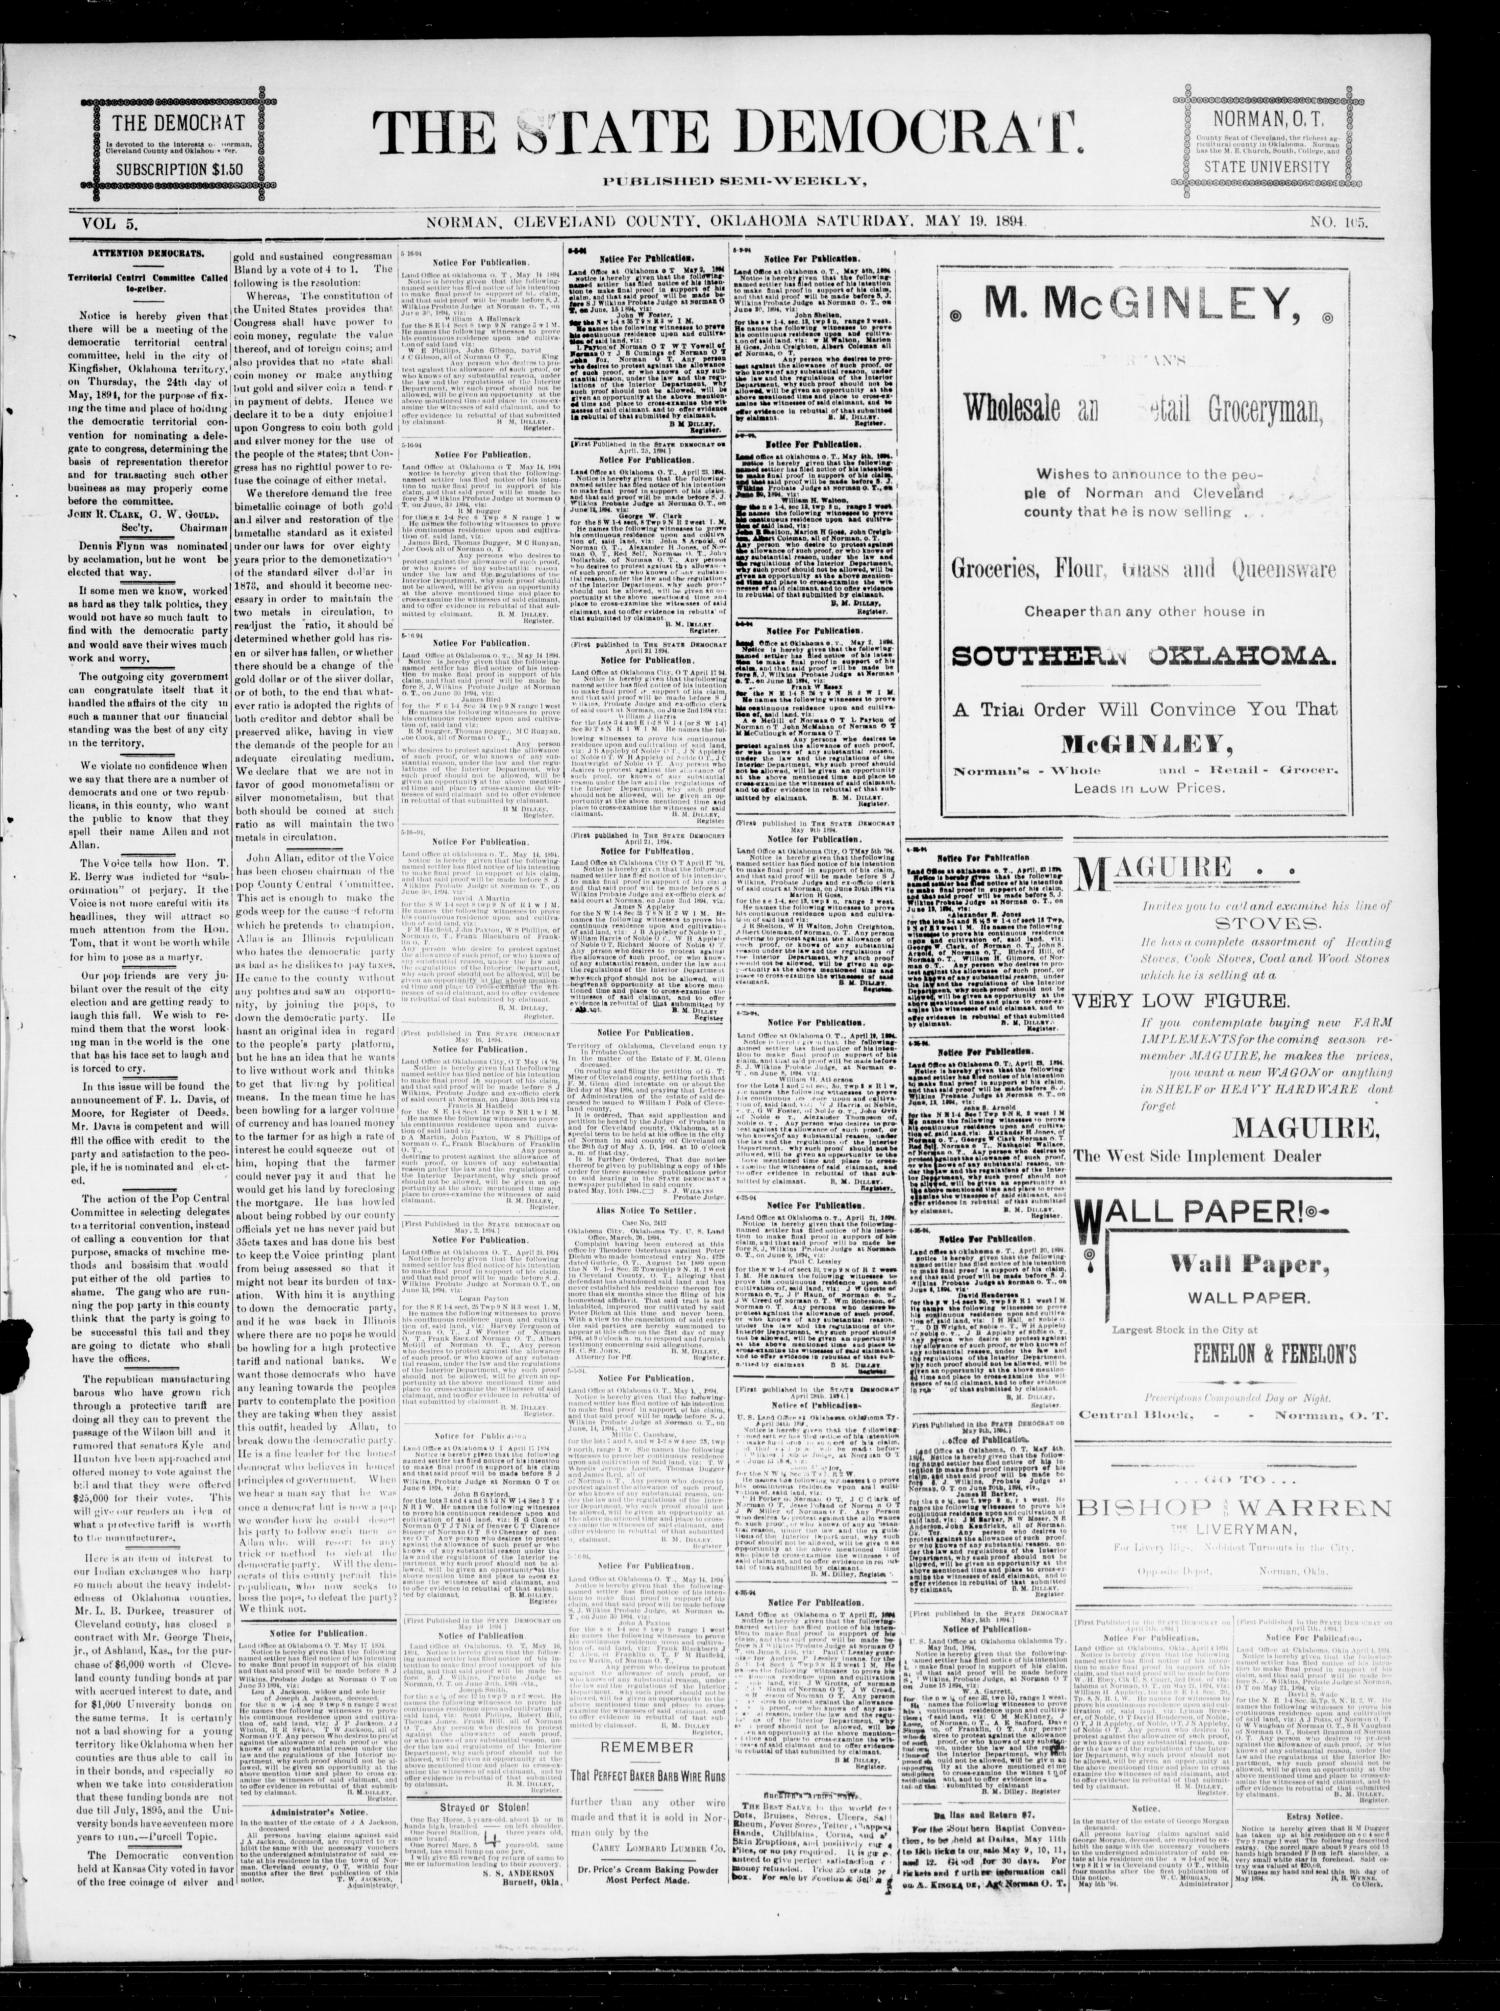 The State Democrat. (Norman, Okla.), Vol. 5, No. 105, Ed. 1 Saturday, May 19, 1894                                                                                                      [Sequence #]: 1 of 4